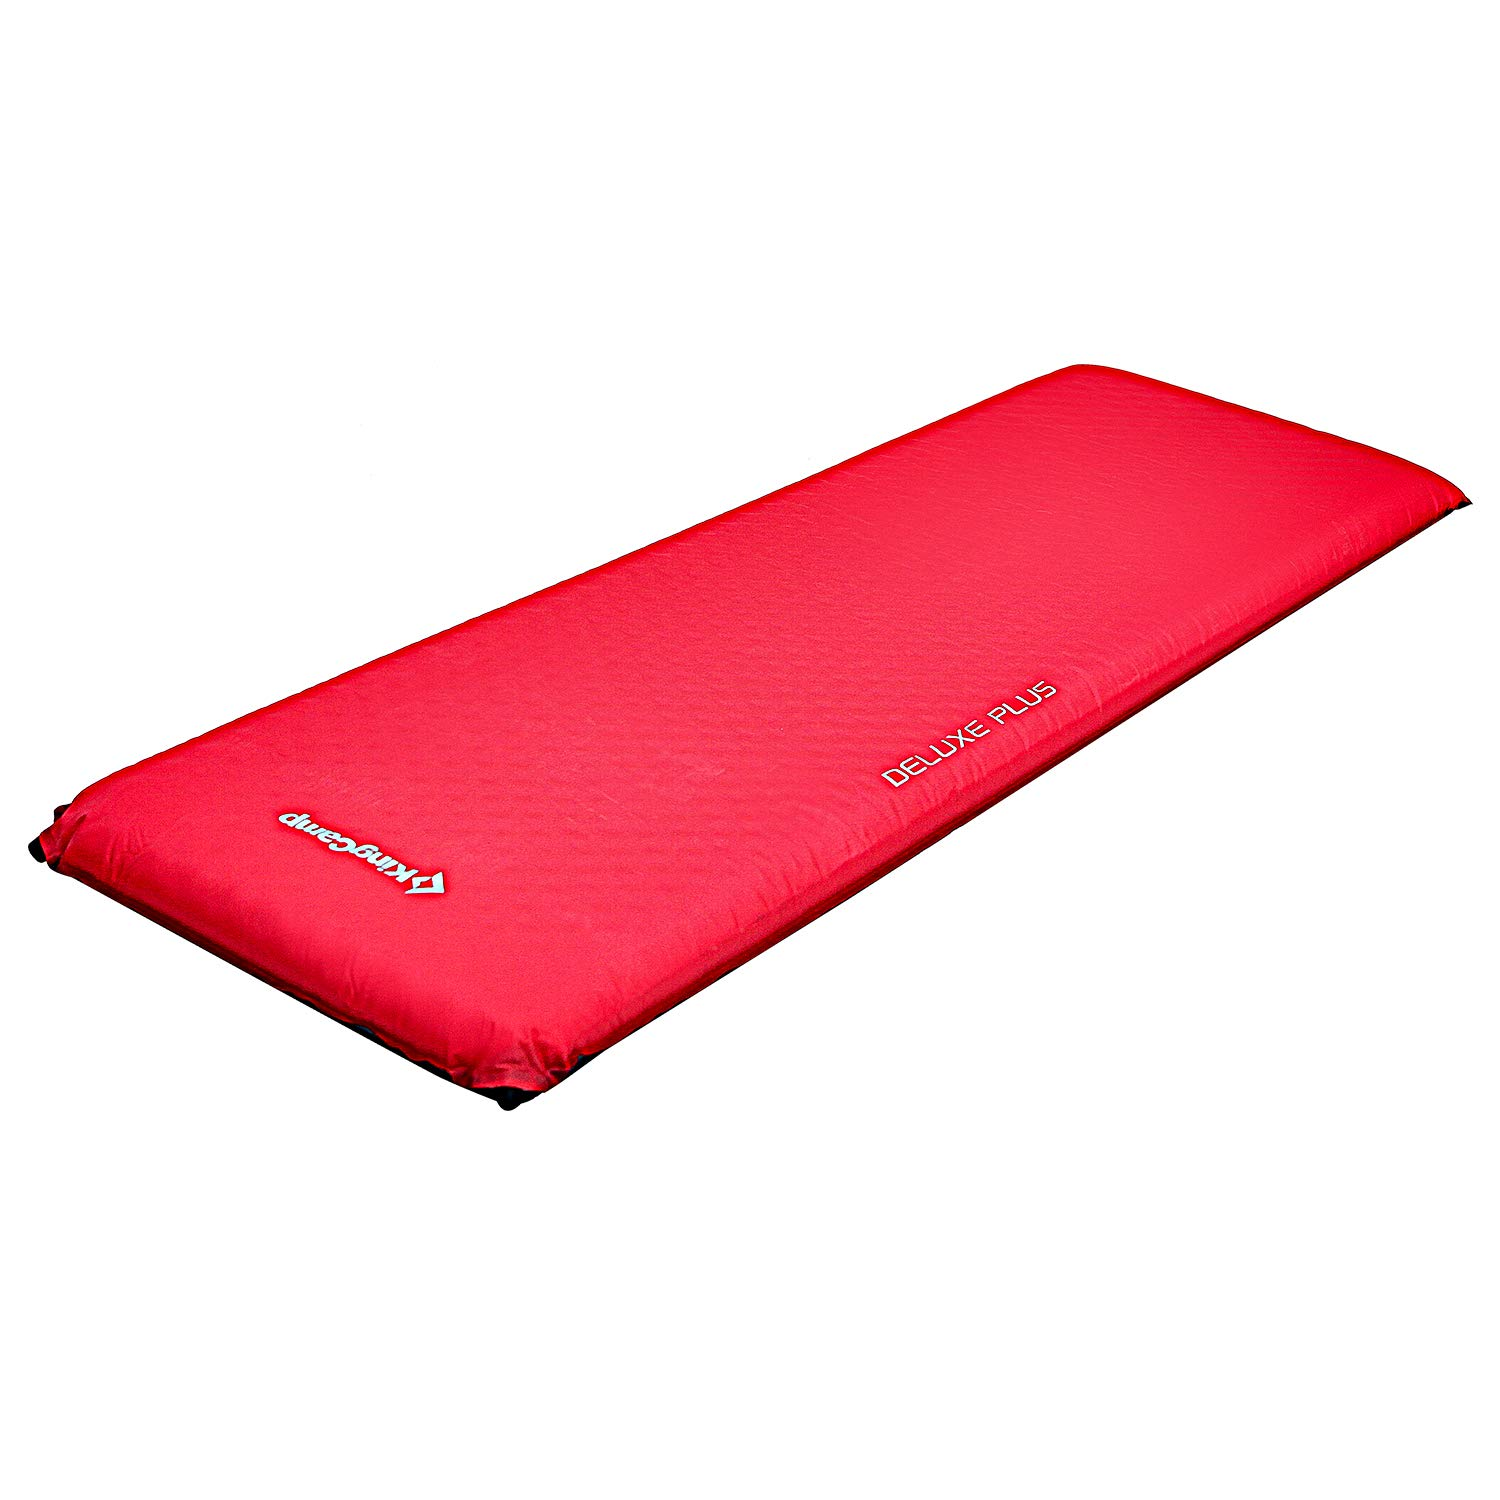 KingCamp Camping Sleeping Pad Foam Mat Mattress - Deluxe Plus Self Inflating 4 inches Thick Pad with Carry Bag, Suitable for Traveling Hiking Family Camping...